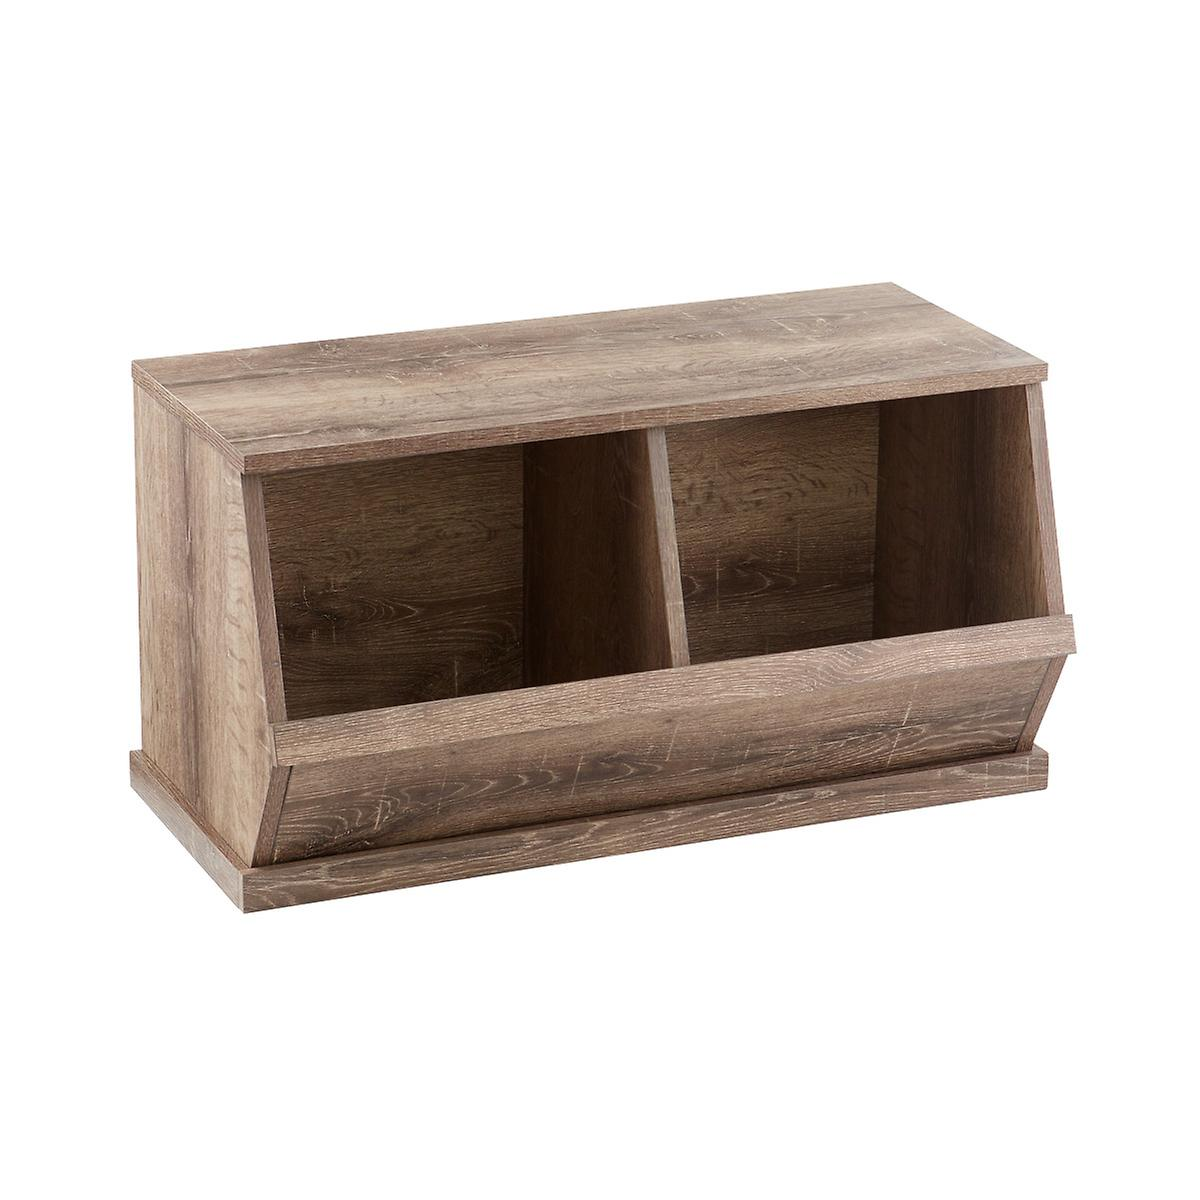 Rustic Driftwood Nantucket Stackable Storage Bin | The Container Store